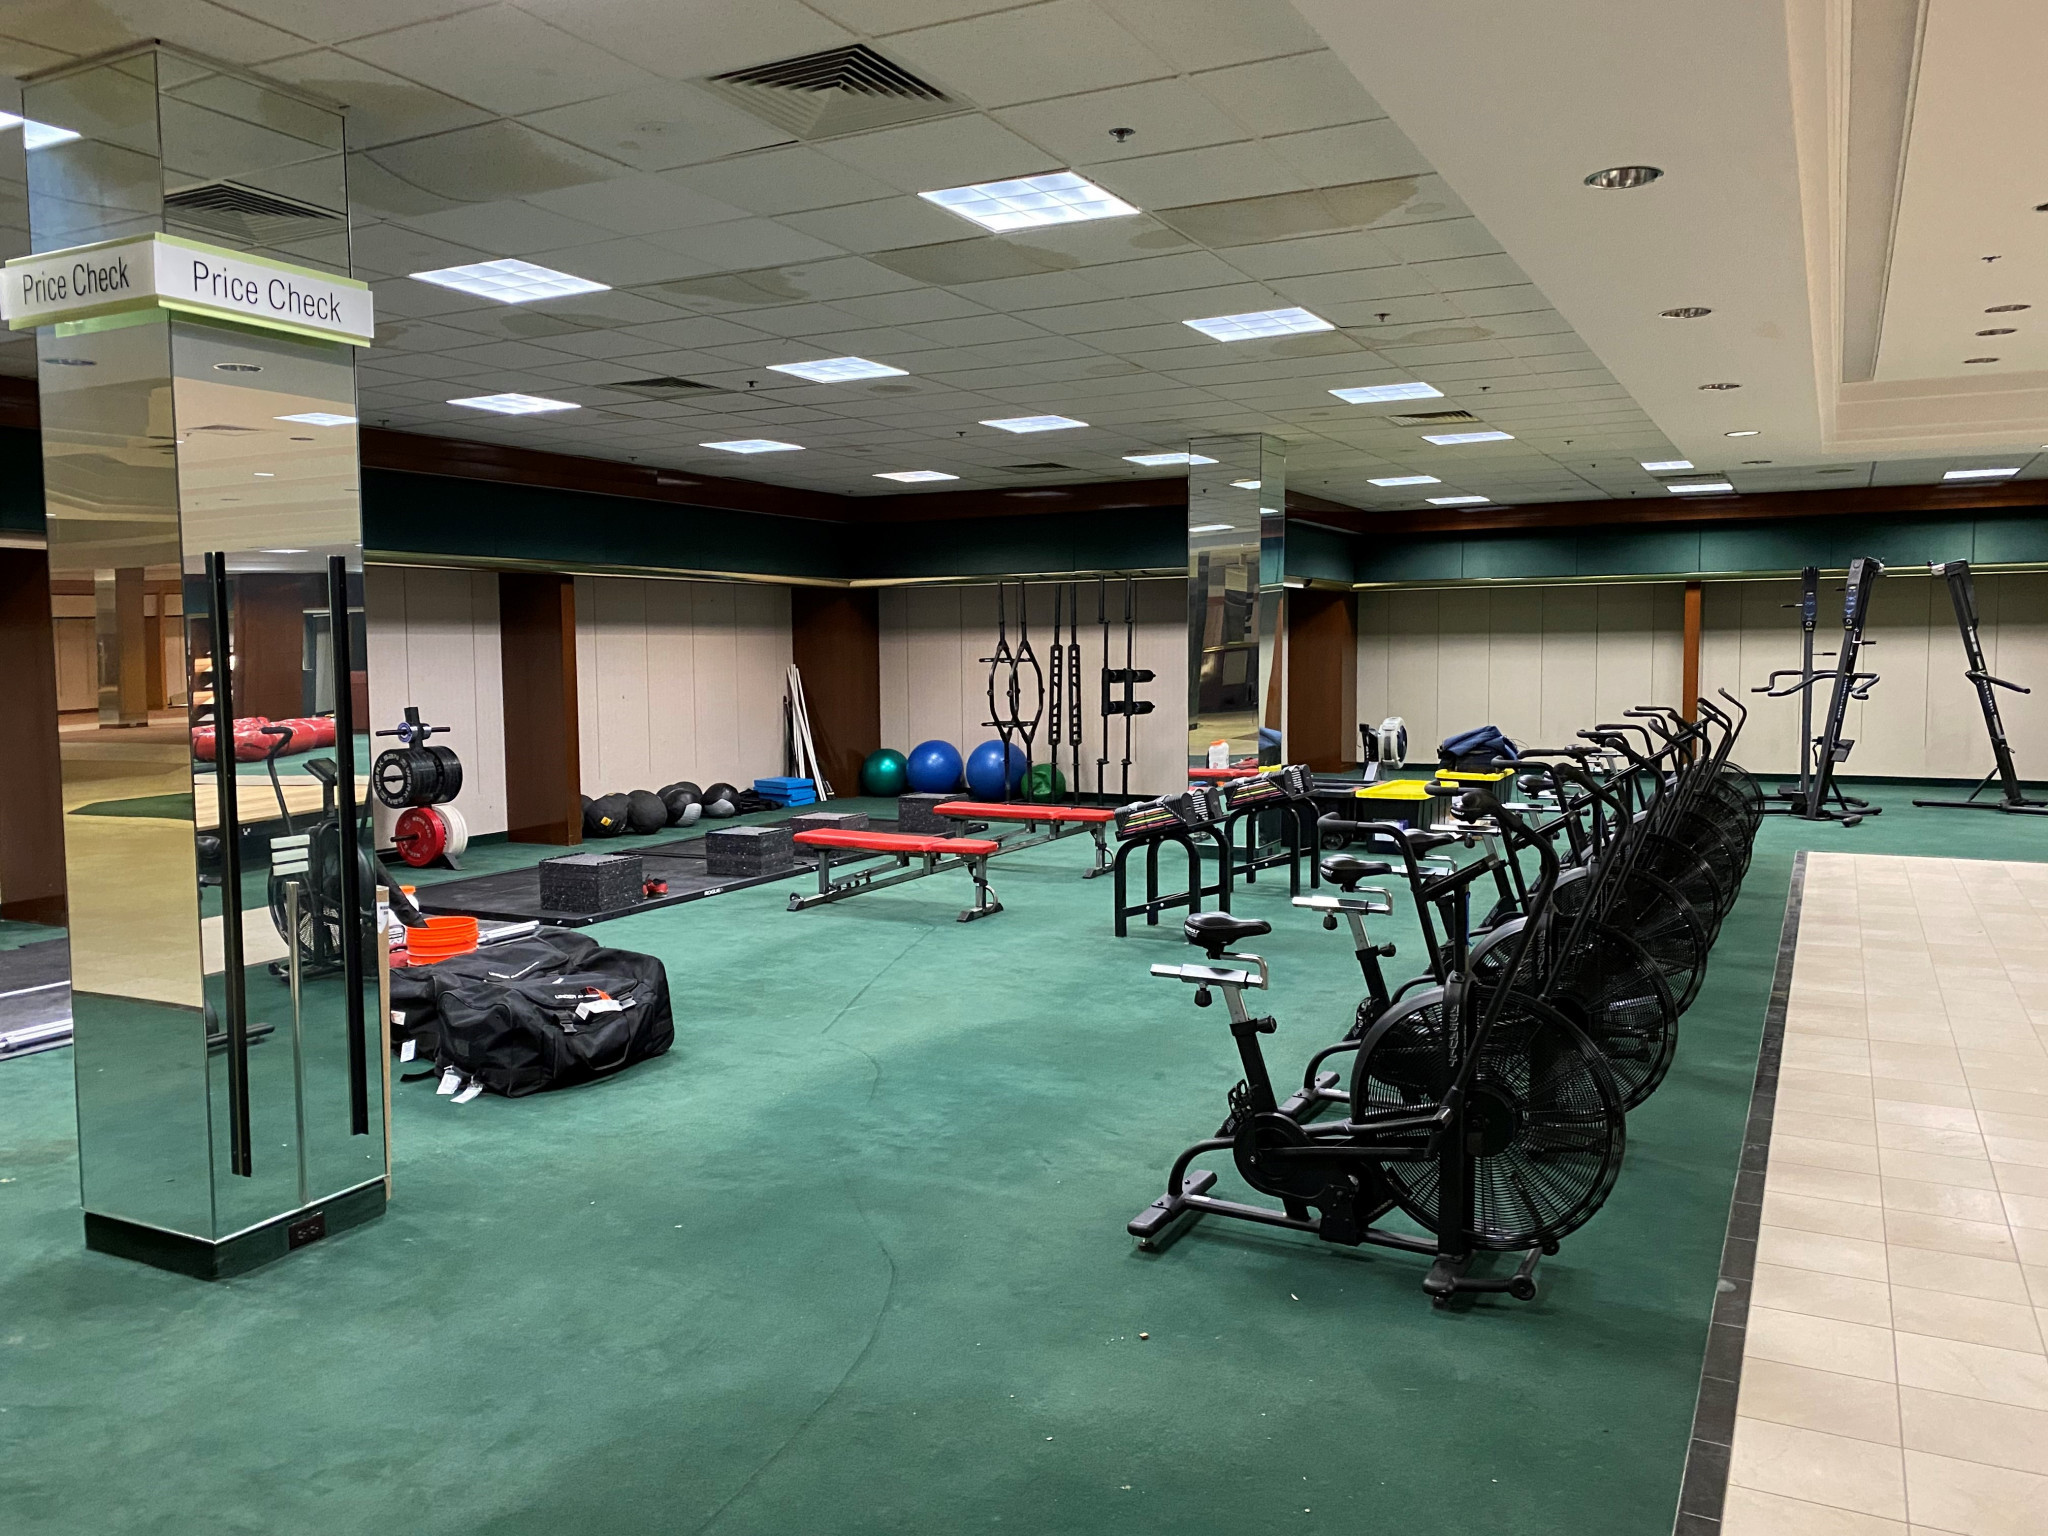 TOKYO 2020: USA BOXING CONVERT DEPARTMENT STORE INTO TRAINING FACILITY